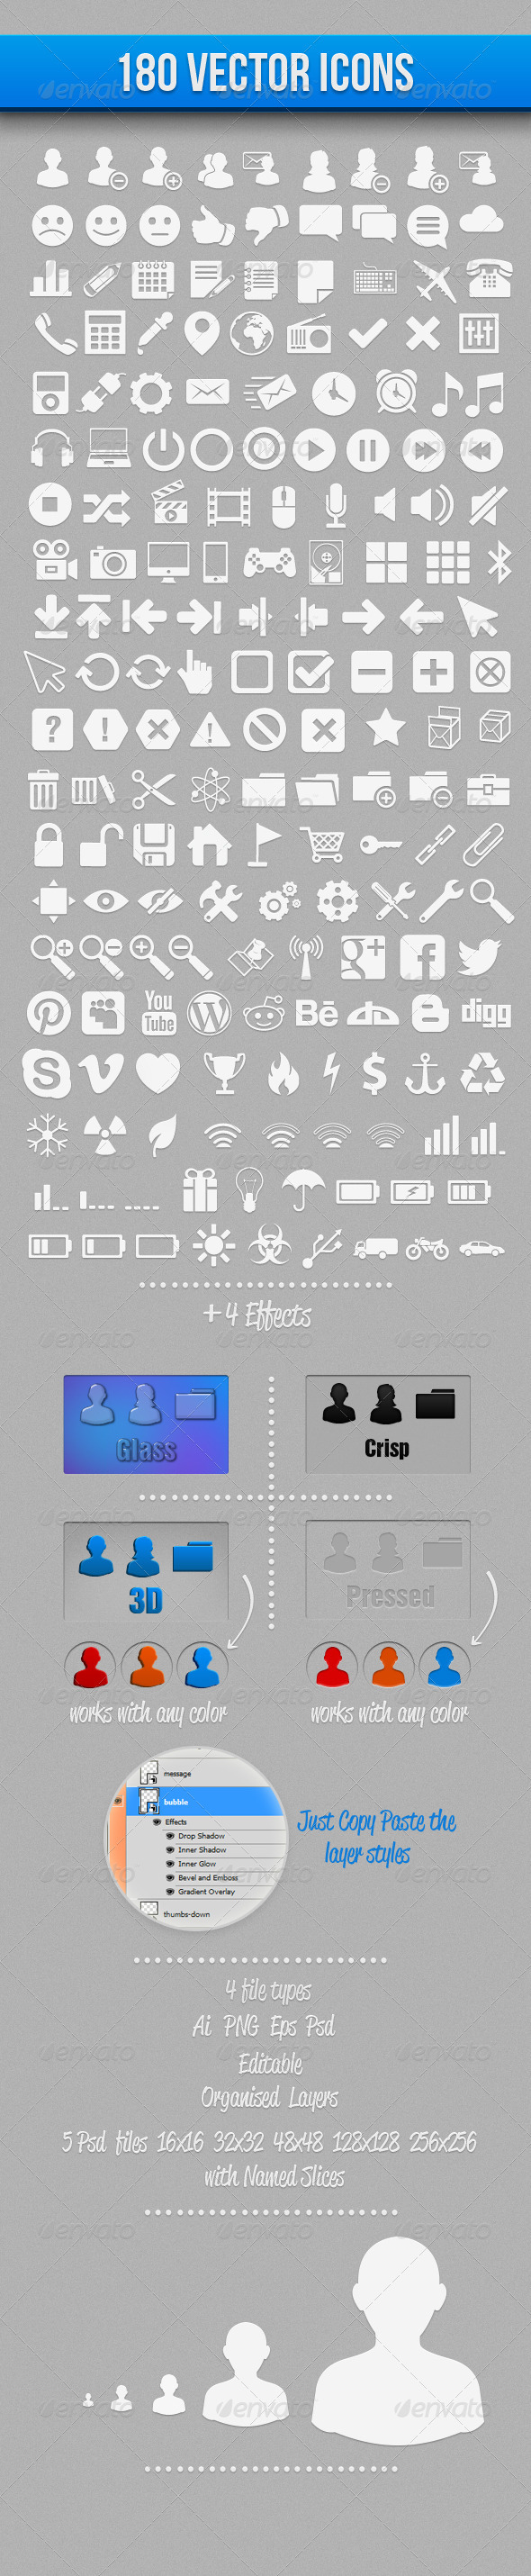 GraphicRiver 180 Vector Icons 2984590